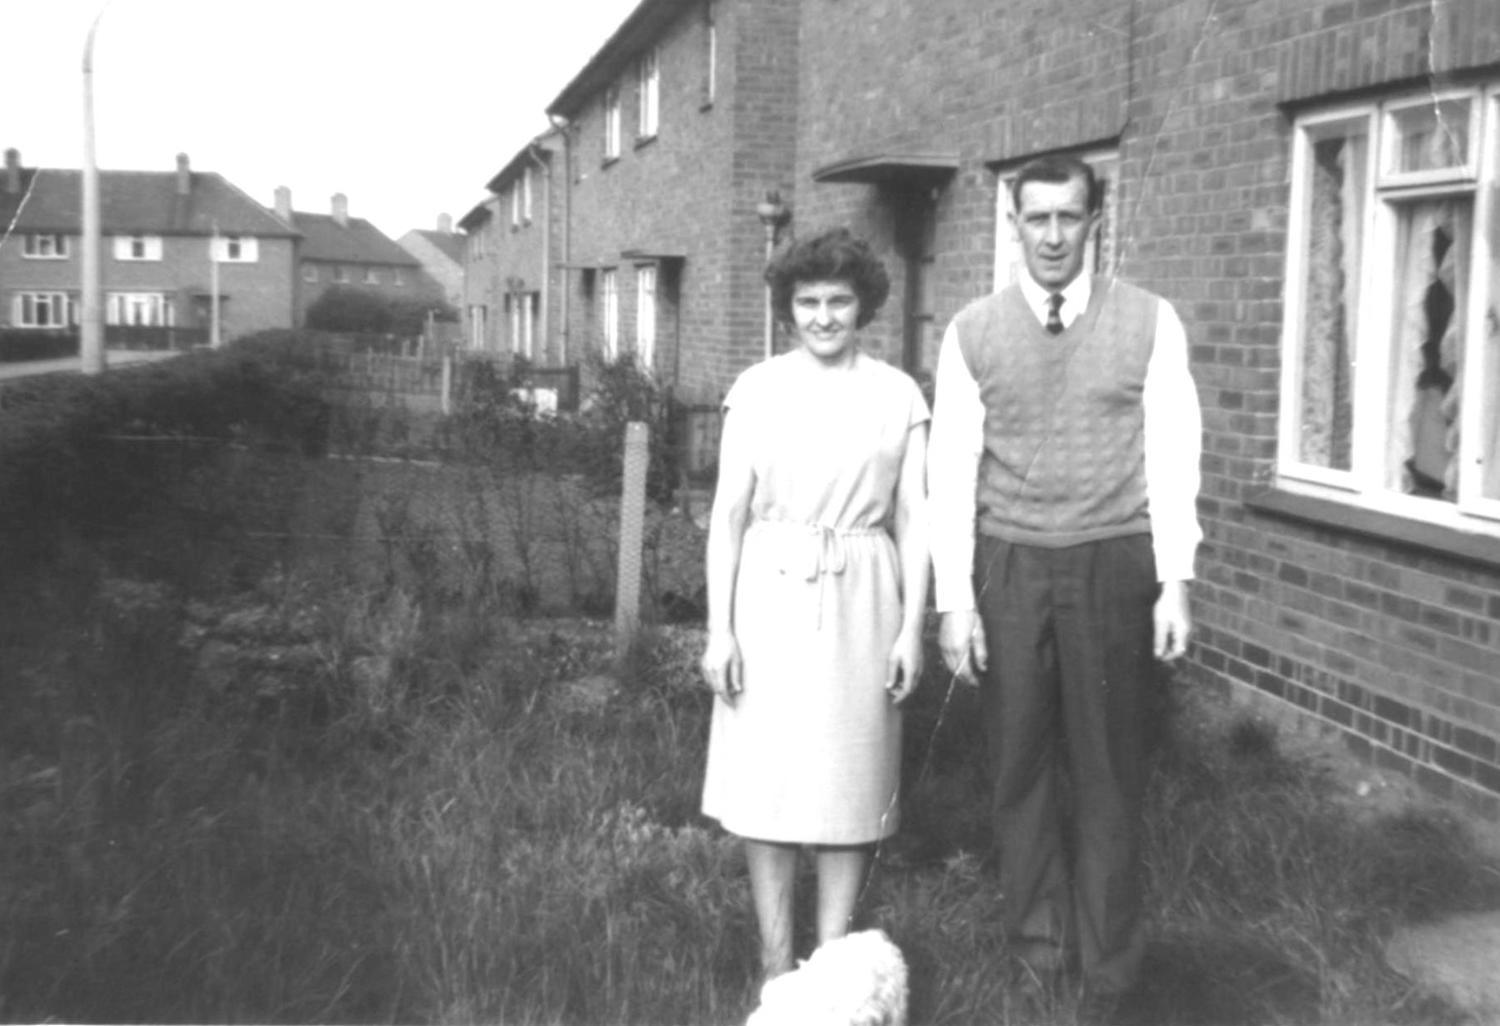 1963, Ray and Joyce Palin outside their house (5 Beck Avenue)